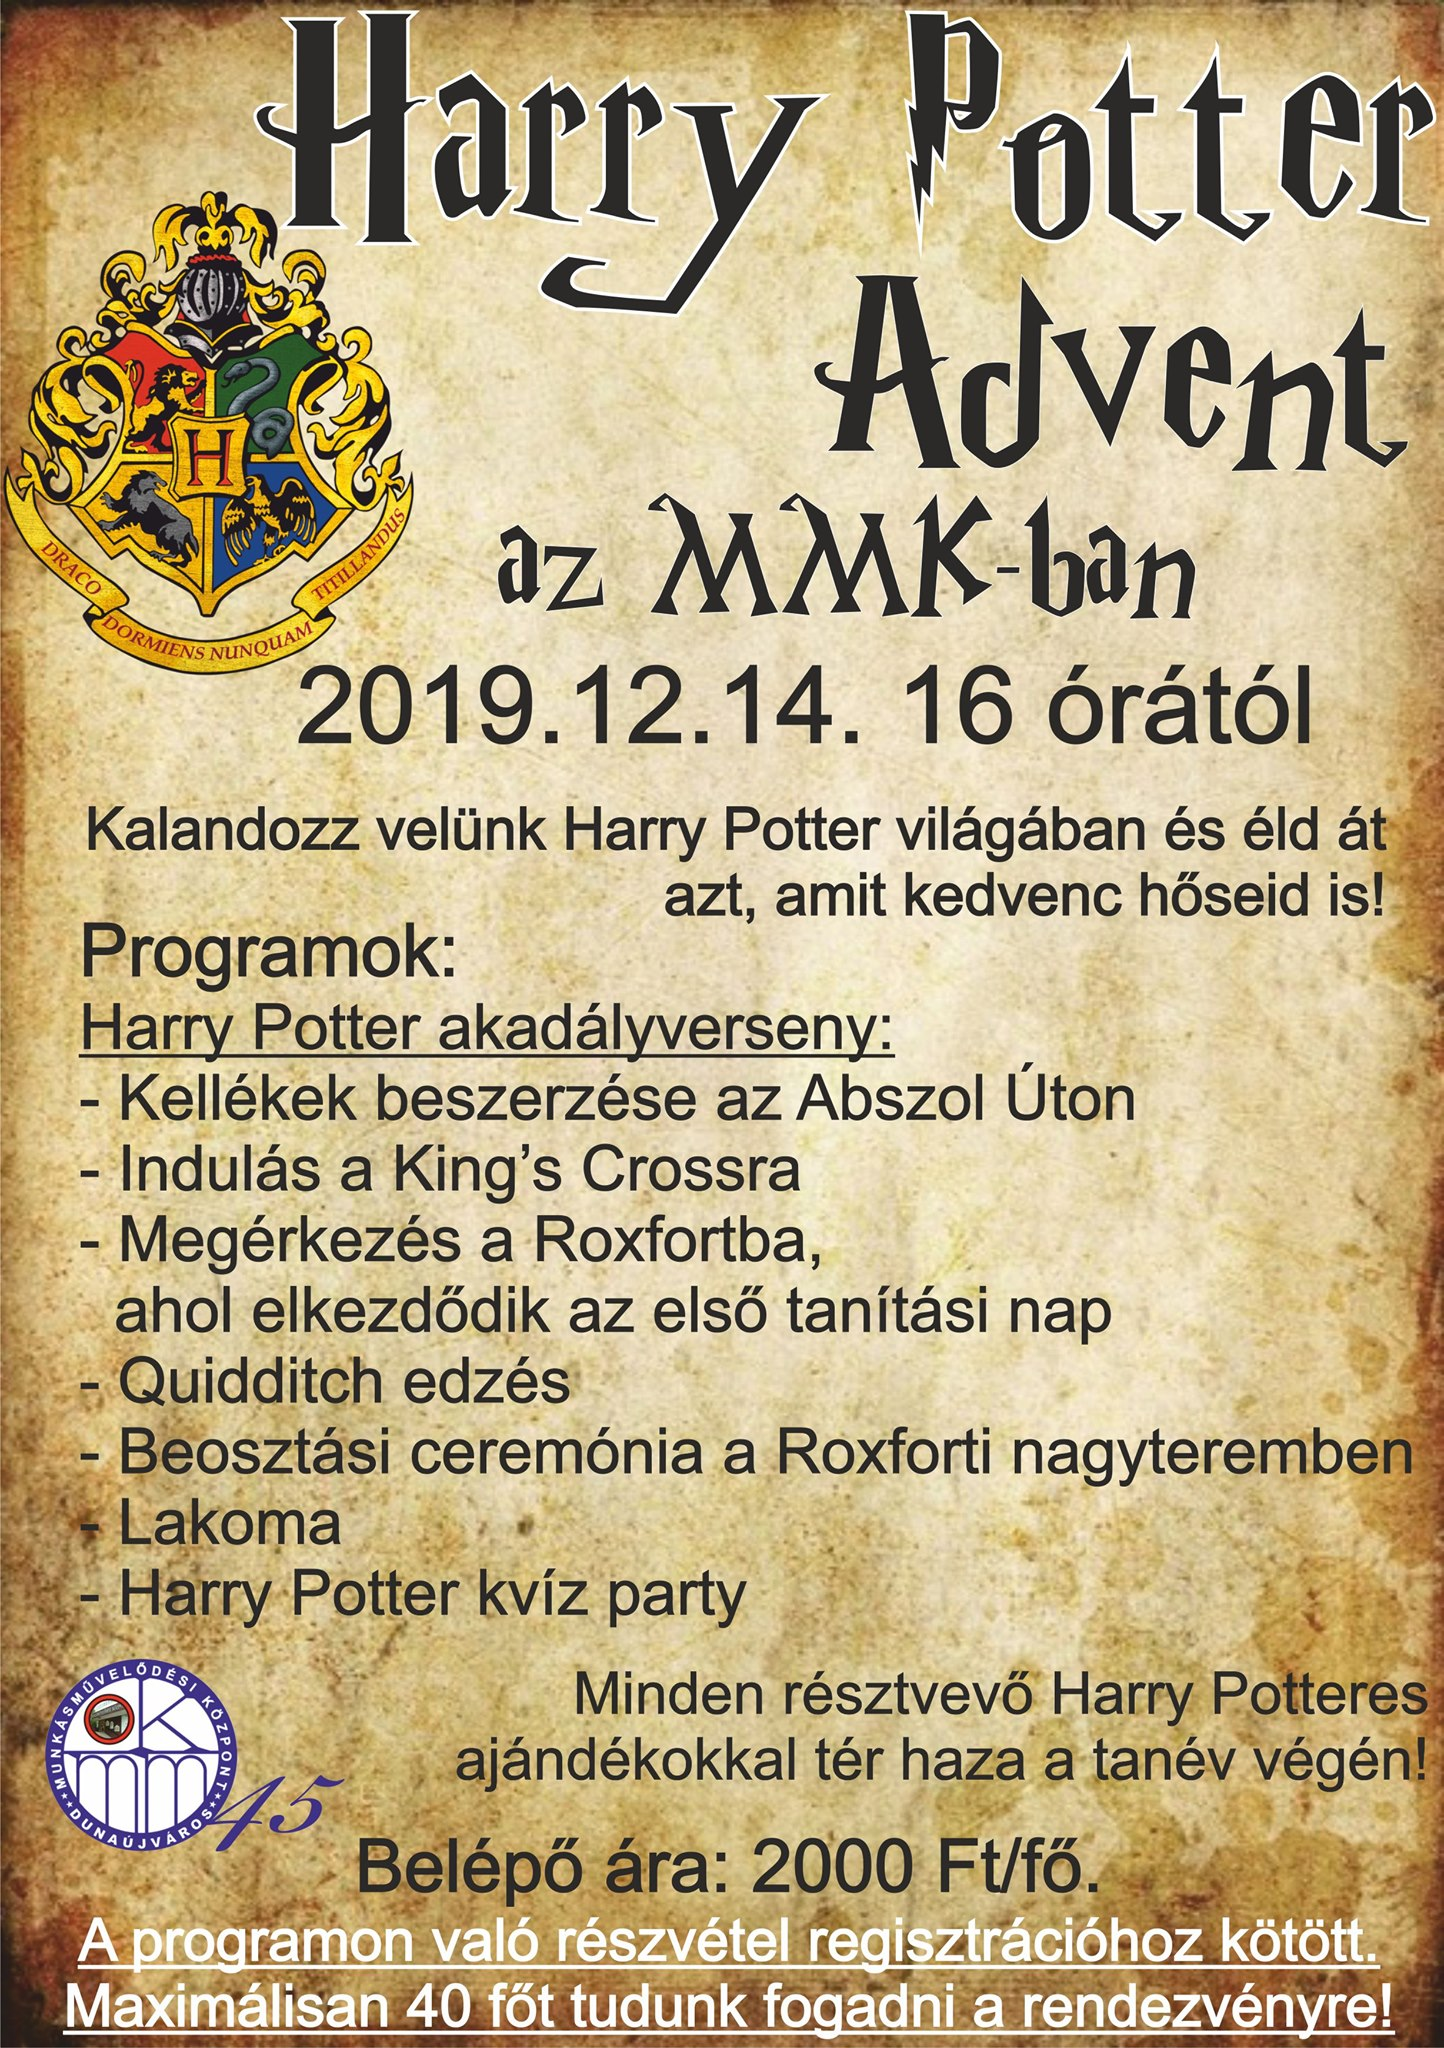 Harry Potter Advent az MMK-ban